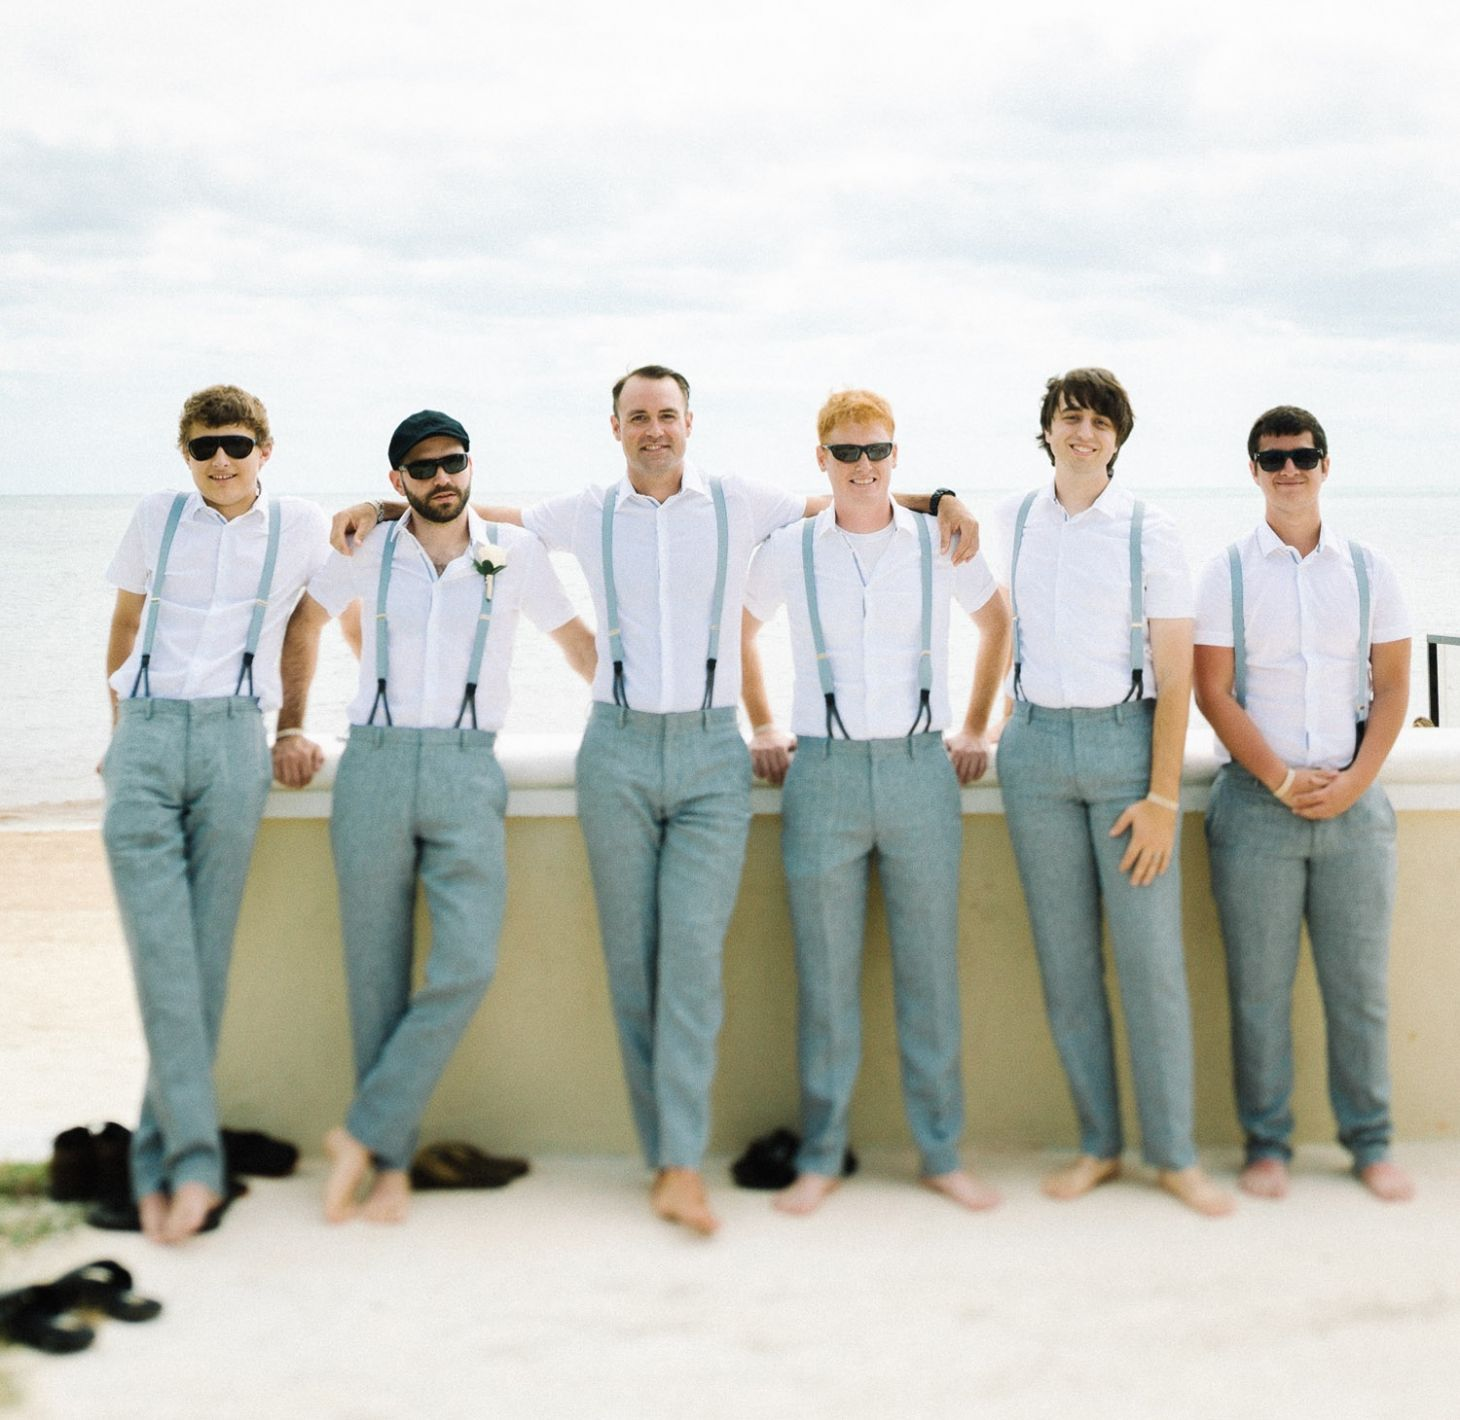 Groomsmen At A Beach Wedding With Grey Slacks And Light Blue Suspenders Very Cool 2015 Mexico